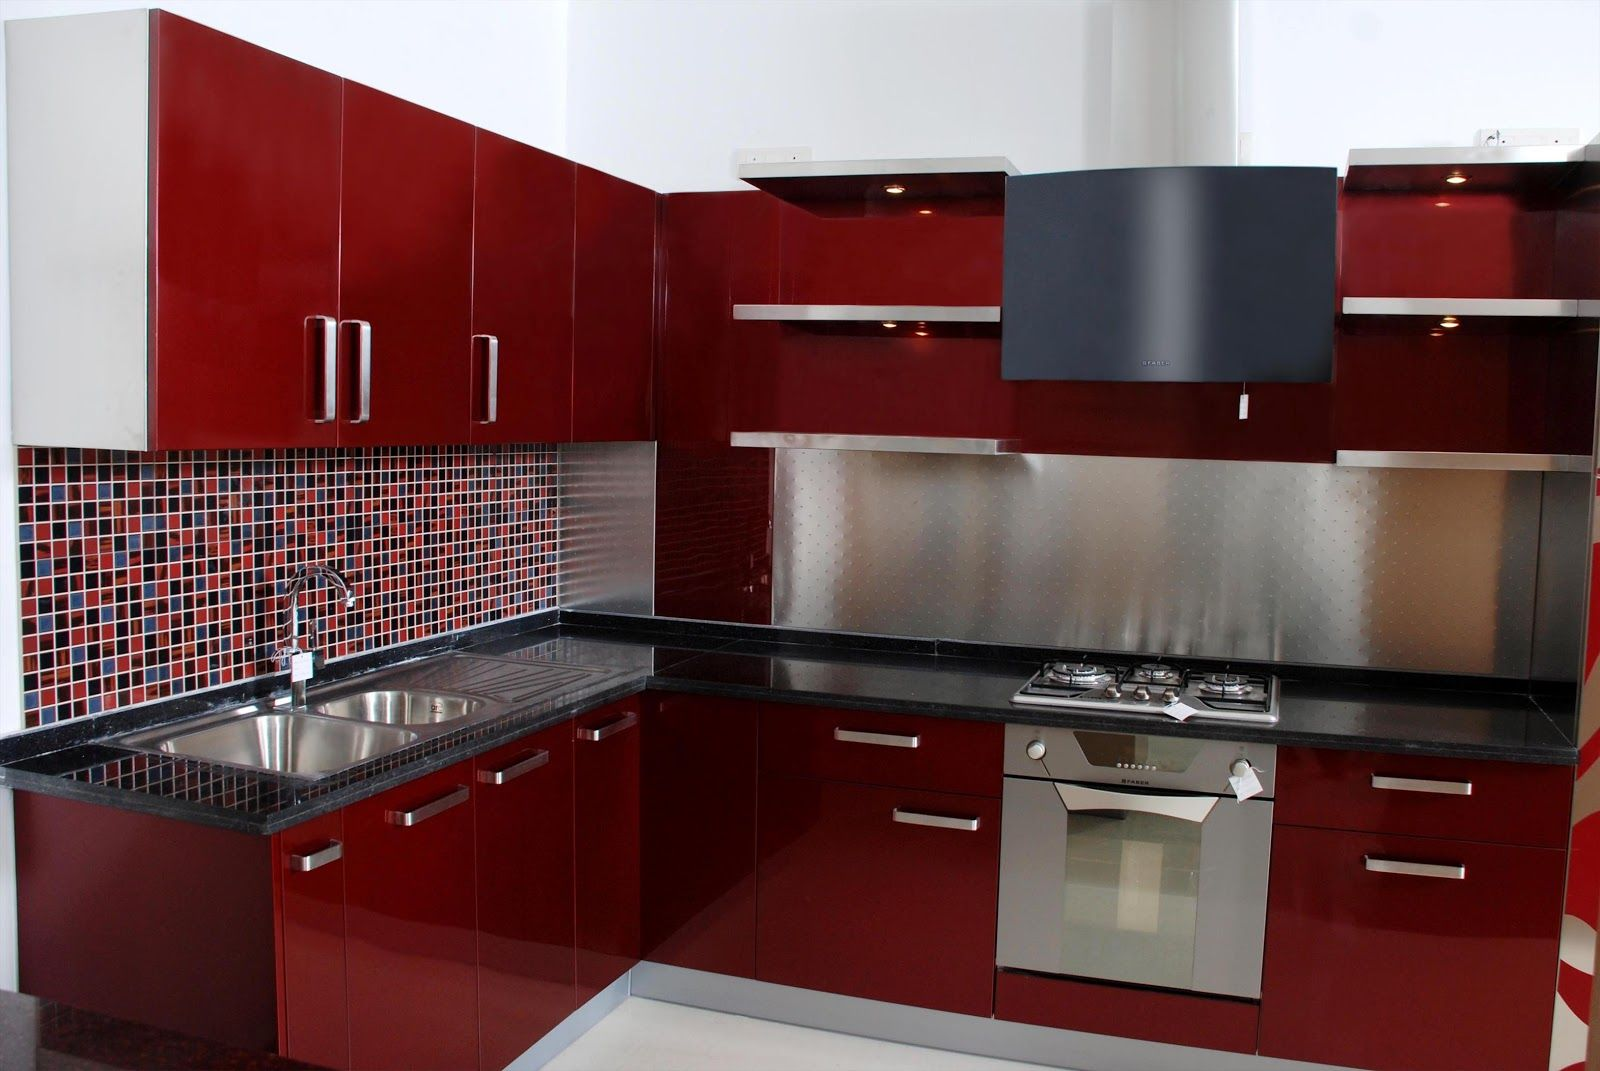 parallel kitchen design india - google search | kitchen